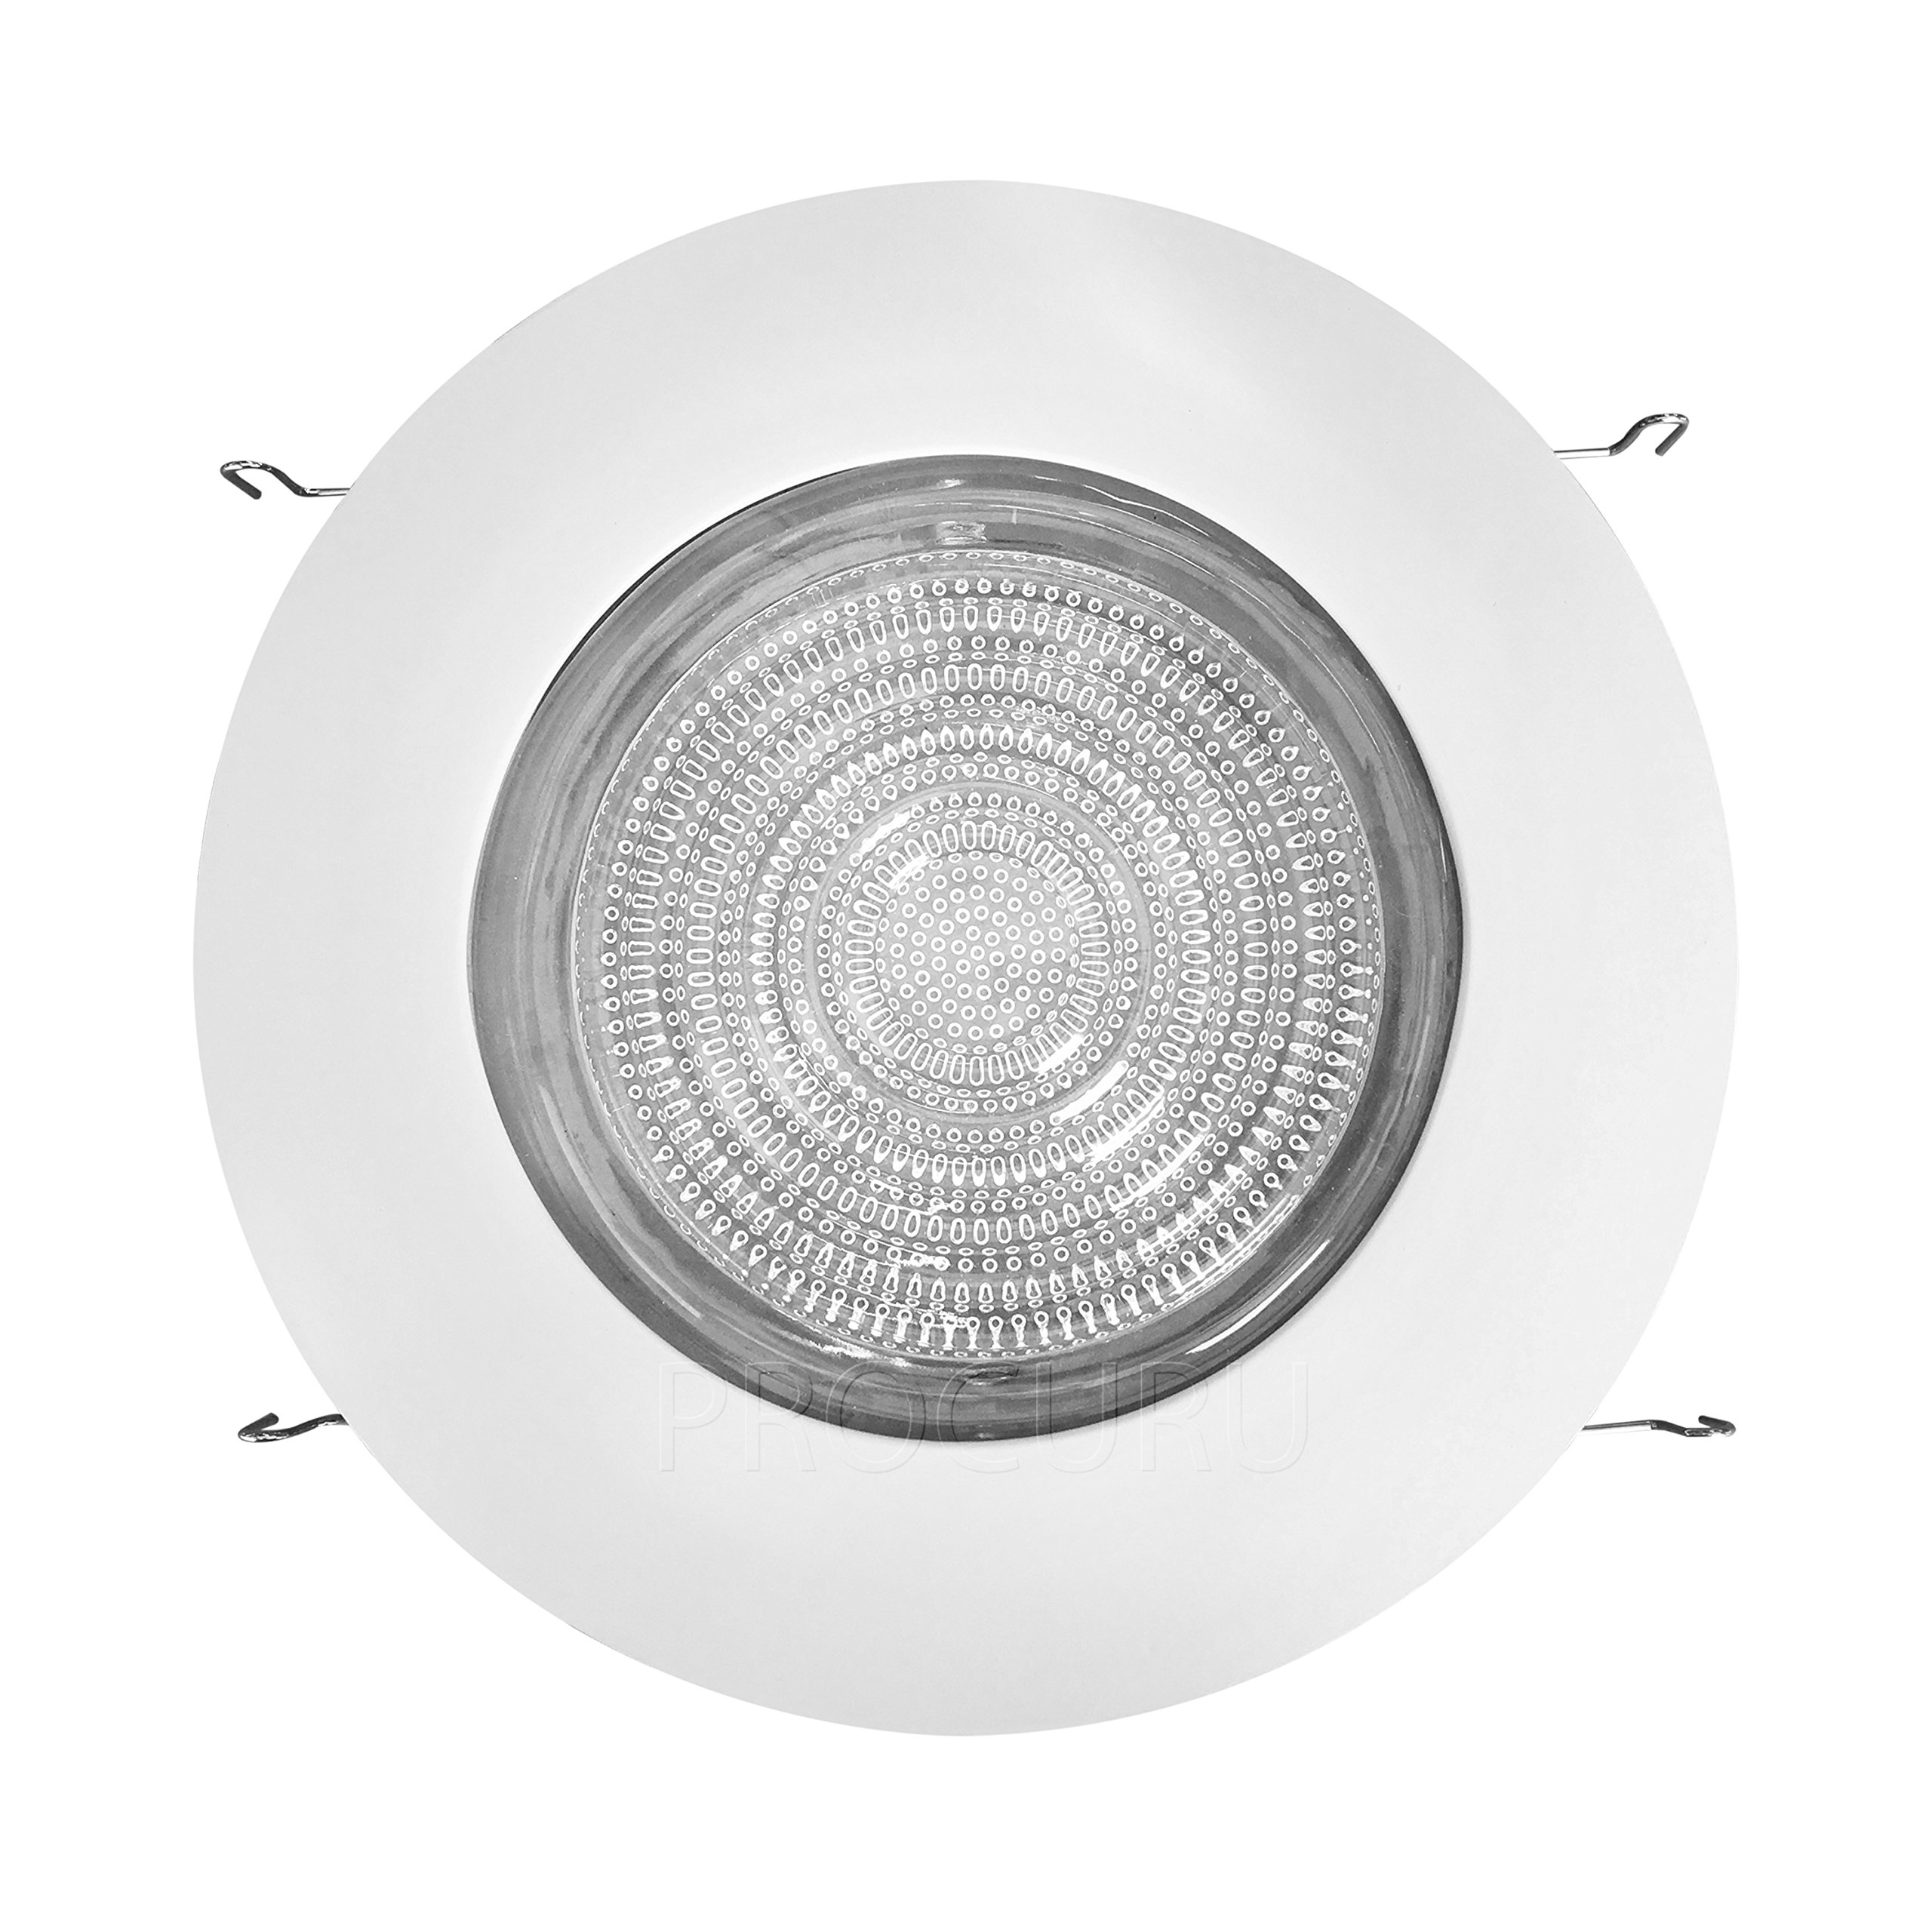 PROCURU 6'' Fresnel Glass Lens with White Metal Shower Trim - for Wet Locations - for 6'' Recessed Can Lights - UL Listed (White-Fresnel (1-Pack)) by PROCURU (Image #2)